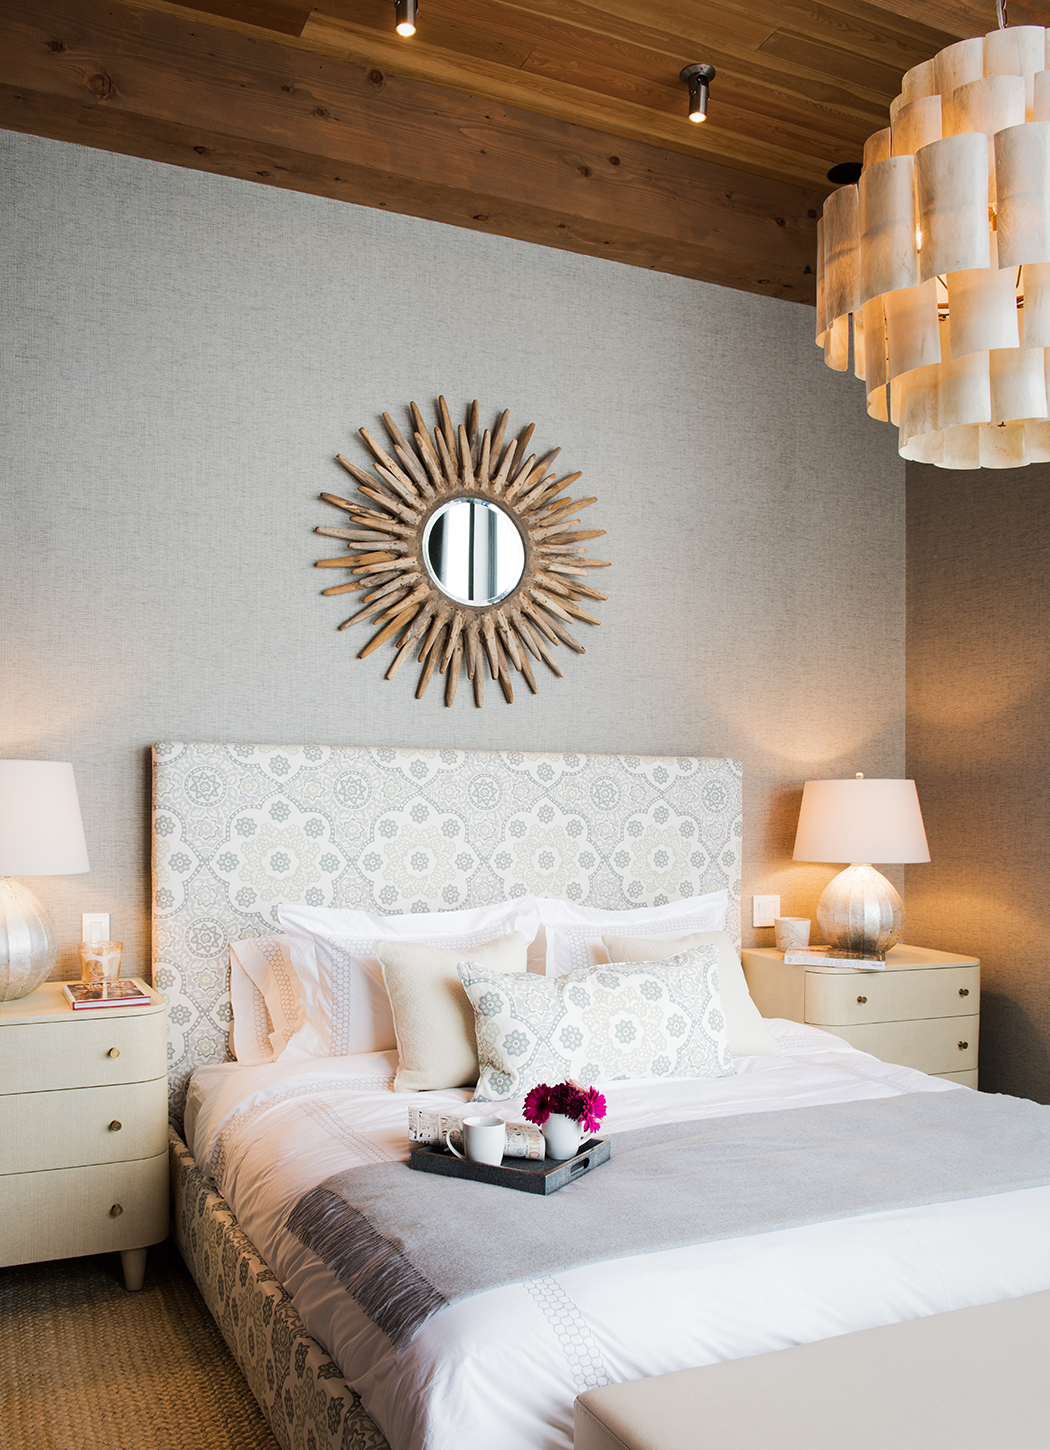 I love this bedroom, the interior designers did a great job with the furnishings! The pink in the flowers added the extra pop of color to really draw in your eye.